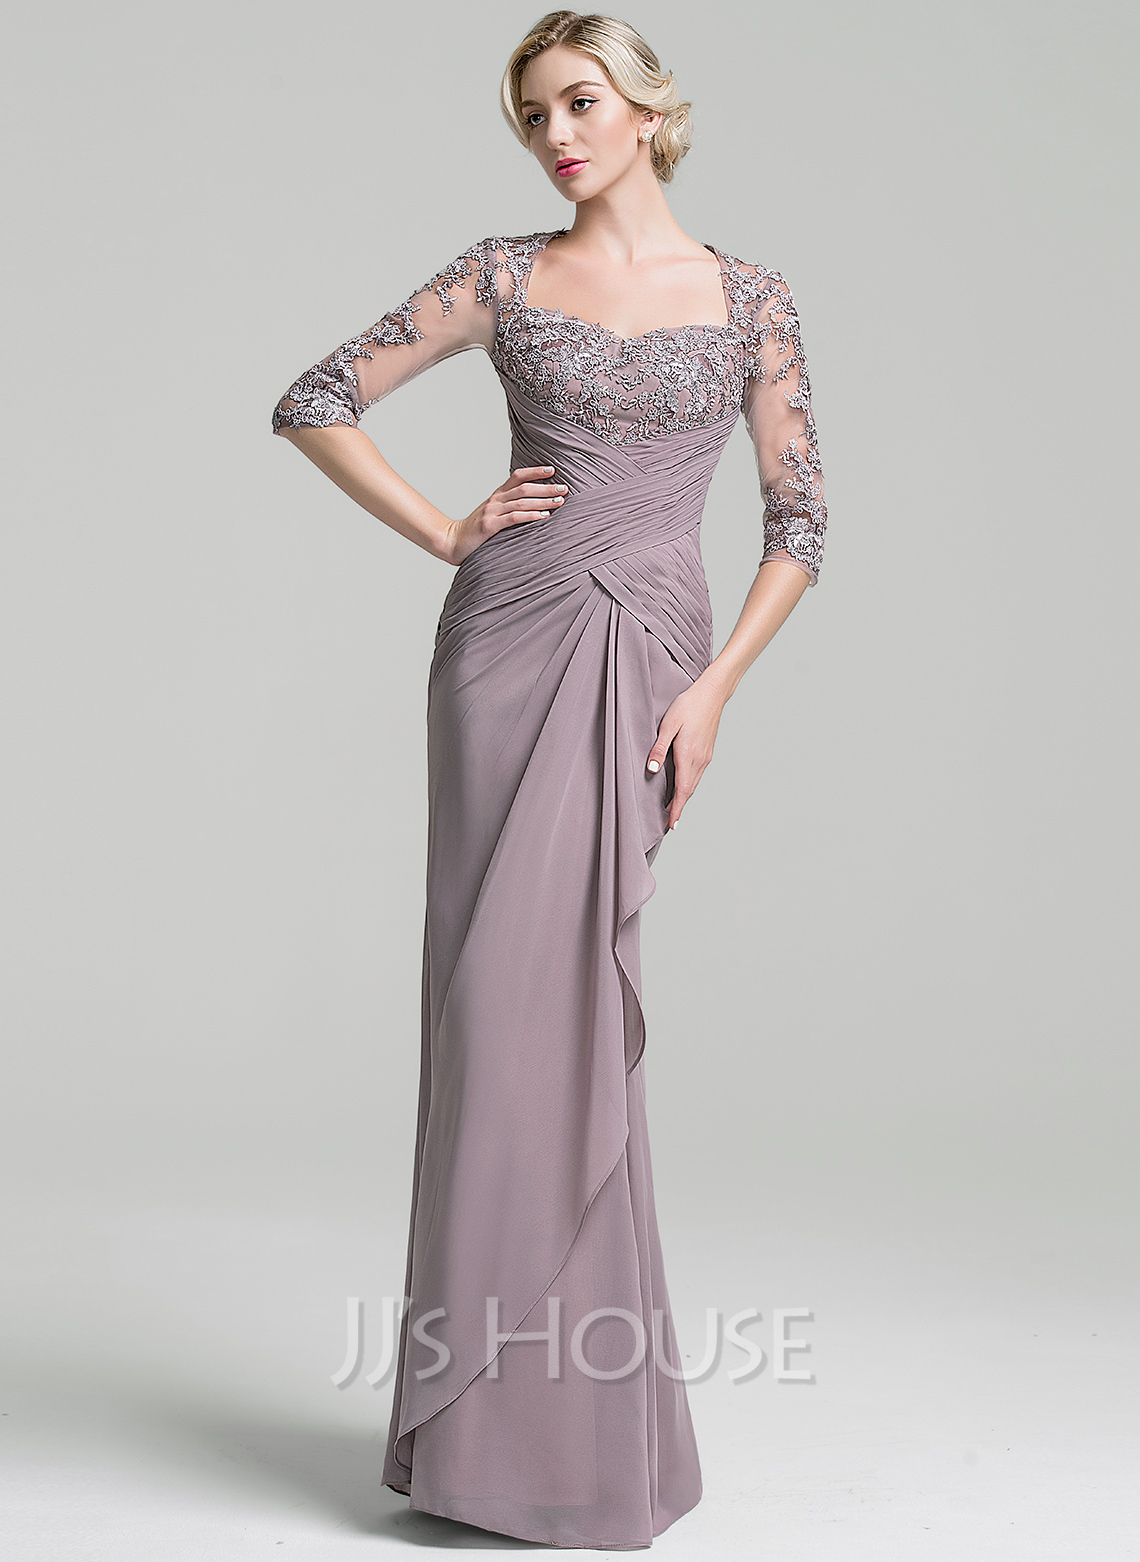 beb7950ca298a Trumpet/Mermaid Sweetheart Floor-Length Chiffon Mother of the Bride Dress  With Ruffle Cascading. Loading zoom